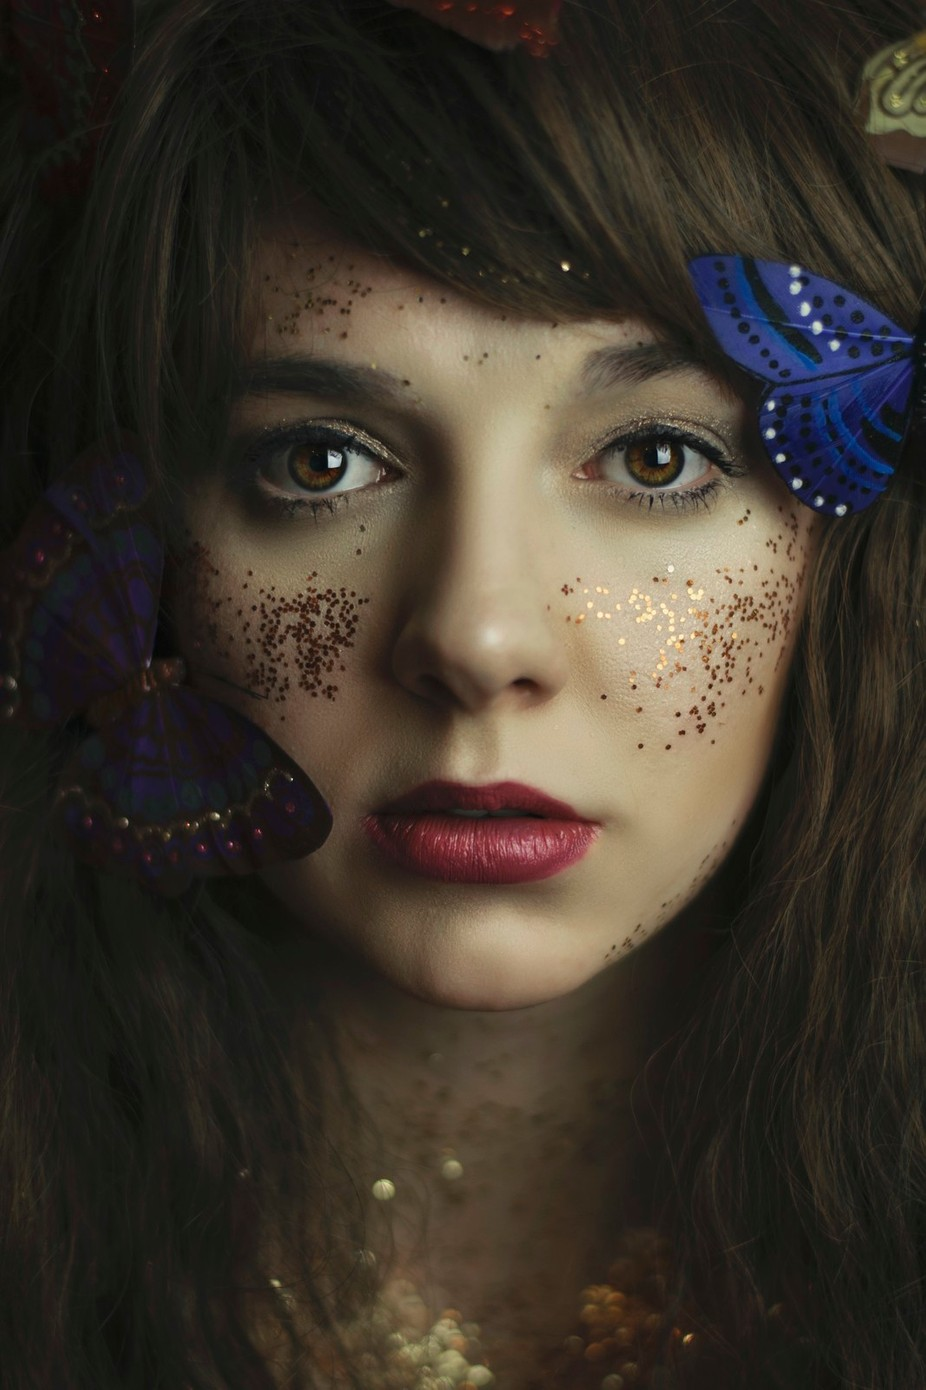 Silent as the Butterfly by kellyrobitaille - Flares And Glitter Photo Contest